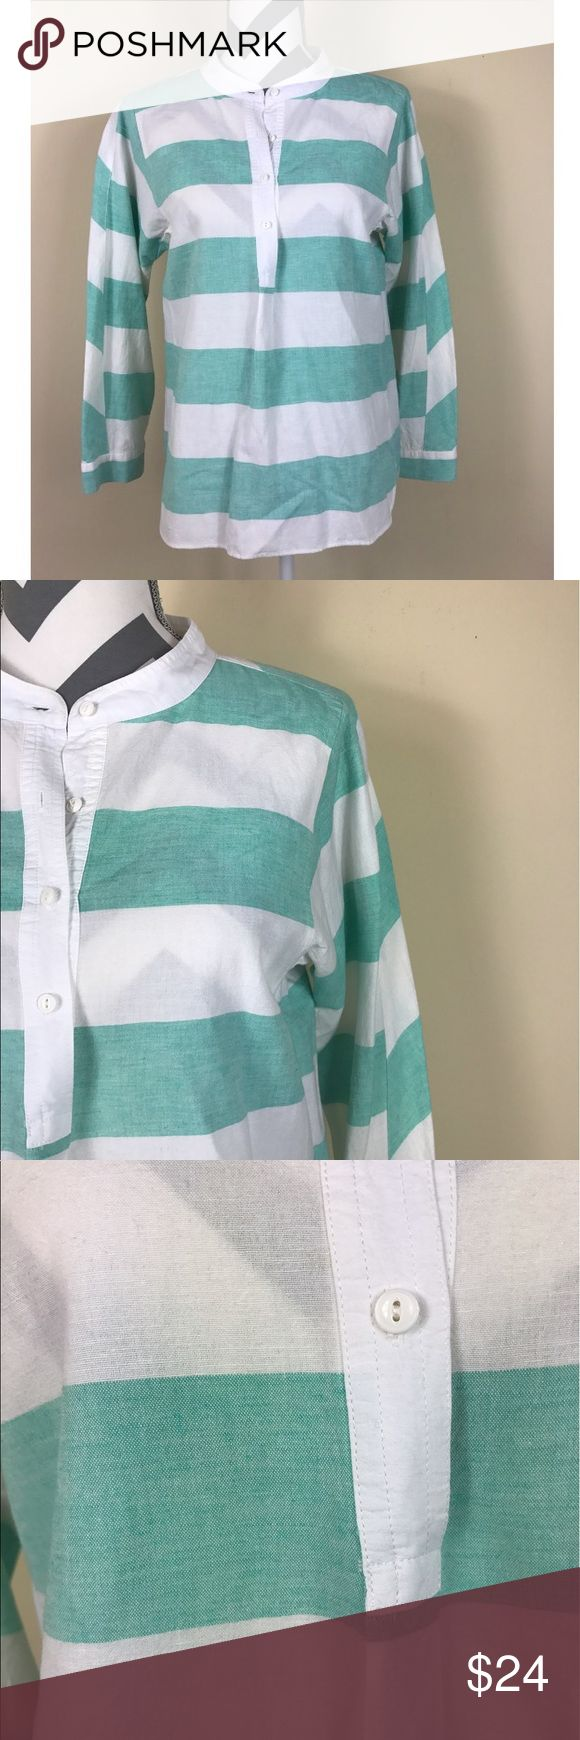 """{Madewell} Broadway & Broome Green Rugby Top Excellent Pre-loved Condition, Like New!! Madewell Broadway & Broome Womens Green White Fairgame Rugby Striped Top   Size: Women's Medium  Measured laying down flat: 24"""" long, 20"""" across bust, 22"""" long sleeves Material: No Tag - was cut out, based on consistency most likely a cotton/linen blend Description: Light weight, no stretch, long sleeves with double cuff, Y-neckline with buttons half way down, slightly sheer  Comes from a smoke free home…"""